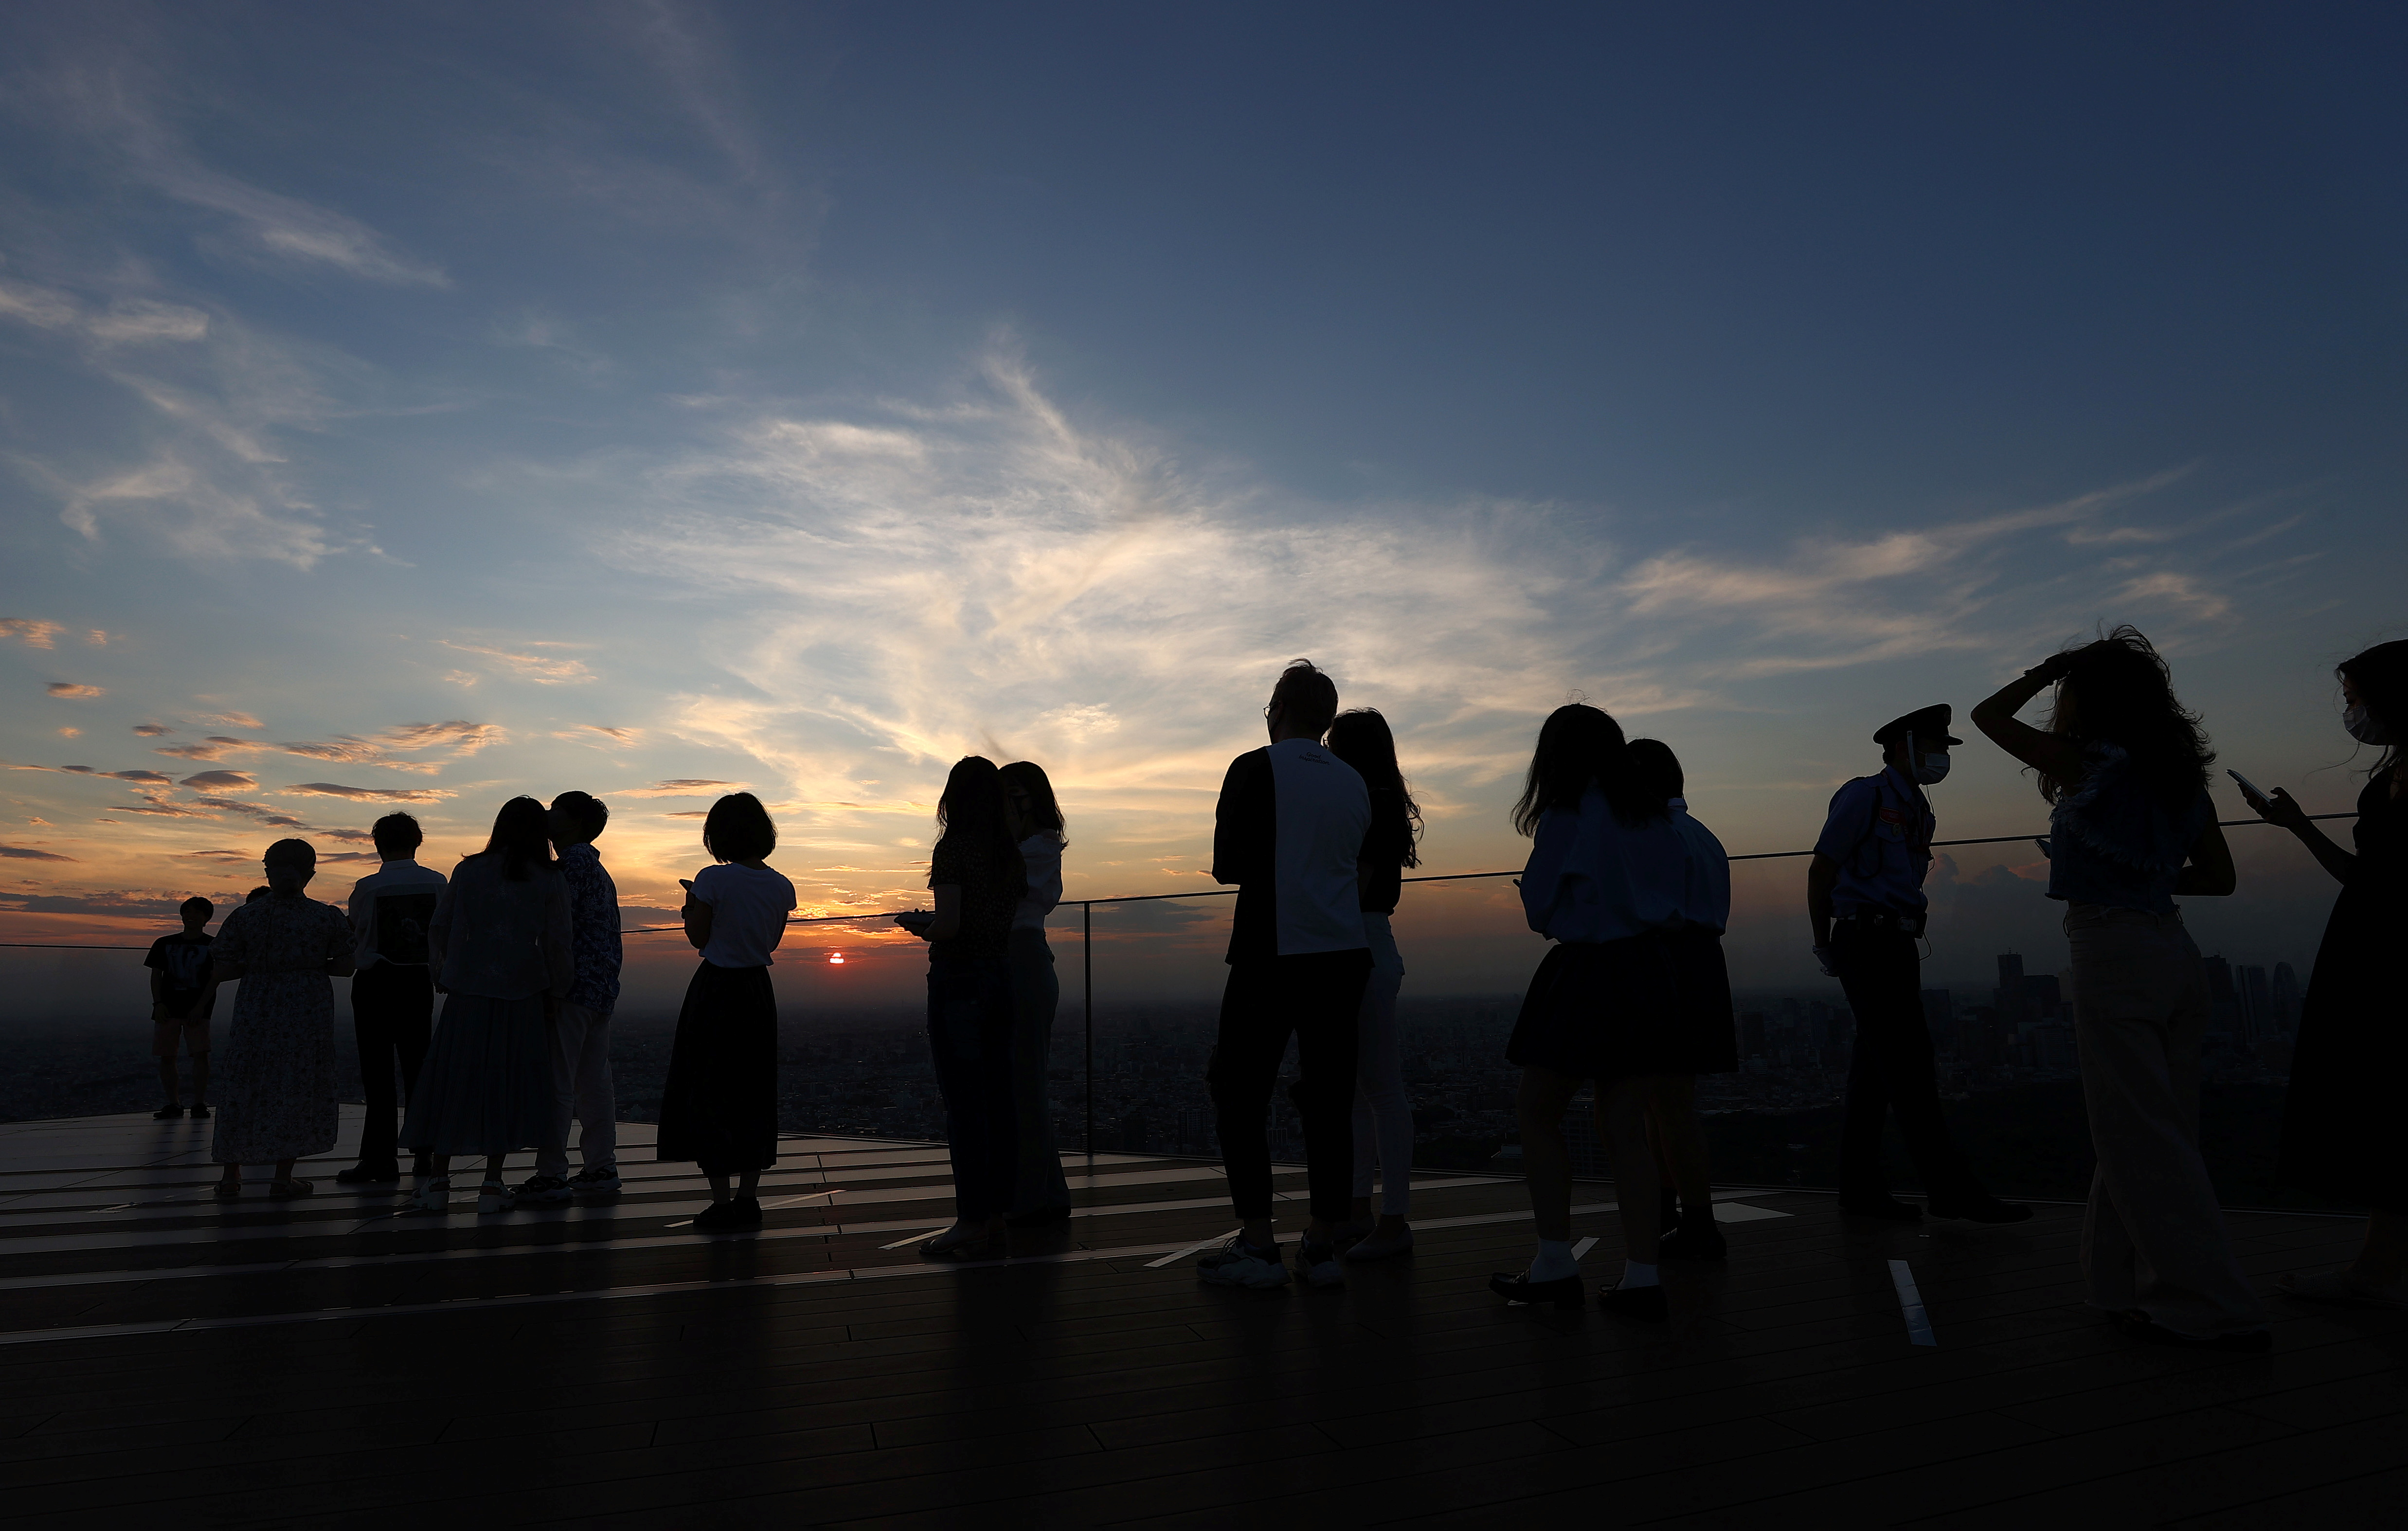 People queue up to get their picture taken in front of the sunset on top of Shibuya Sky observation deck, ahead of the Tokyo 2020 Olympic Games, in Tokyo, Japan, July 19, 2021.   REUTERS/Kai Pfaffenbach